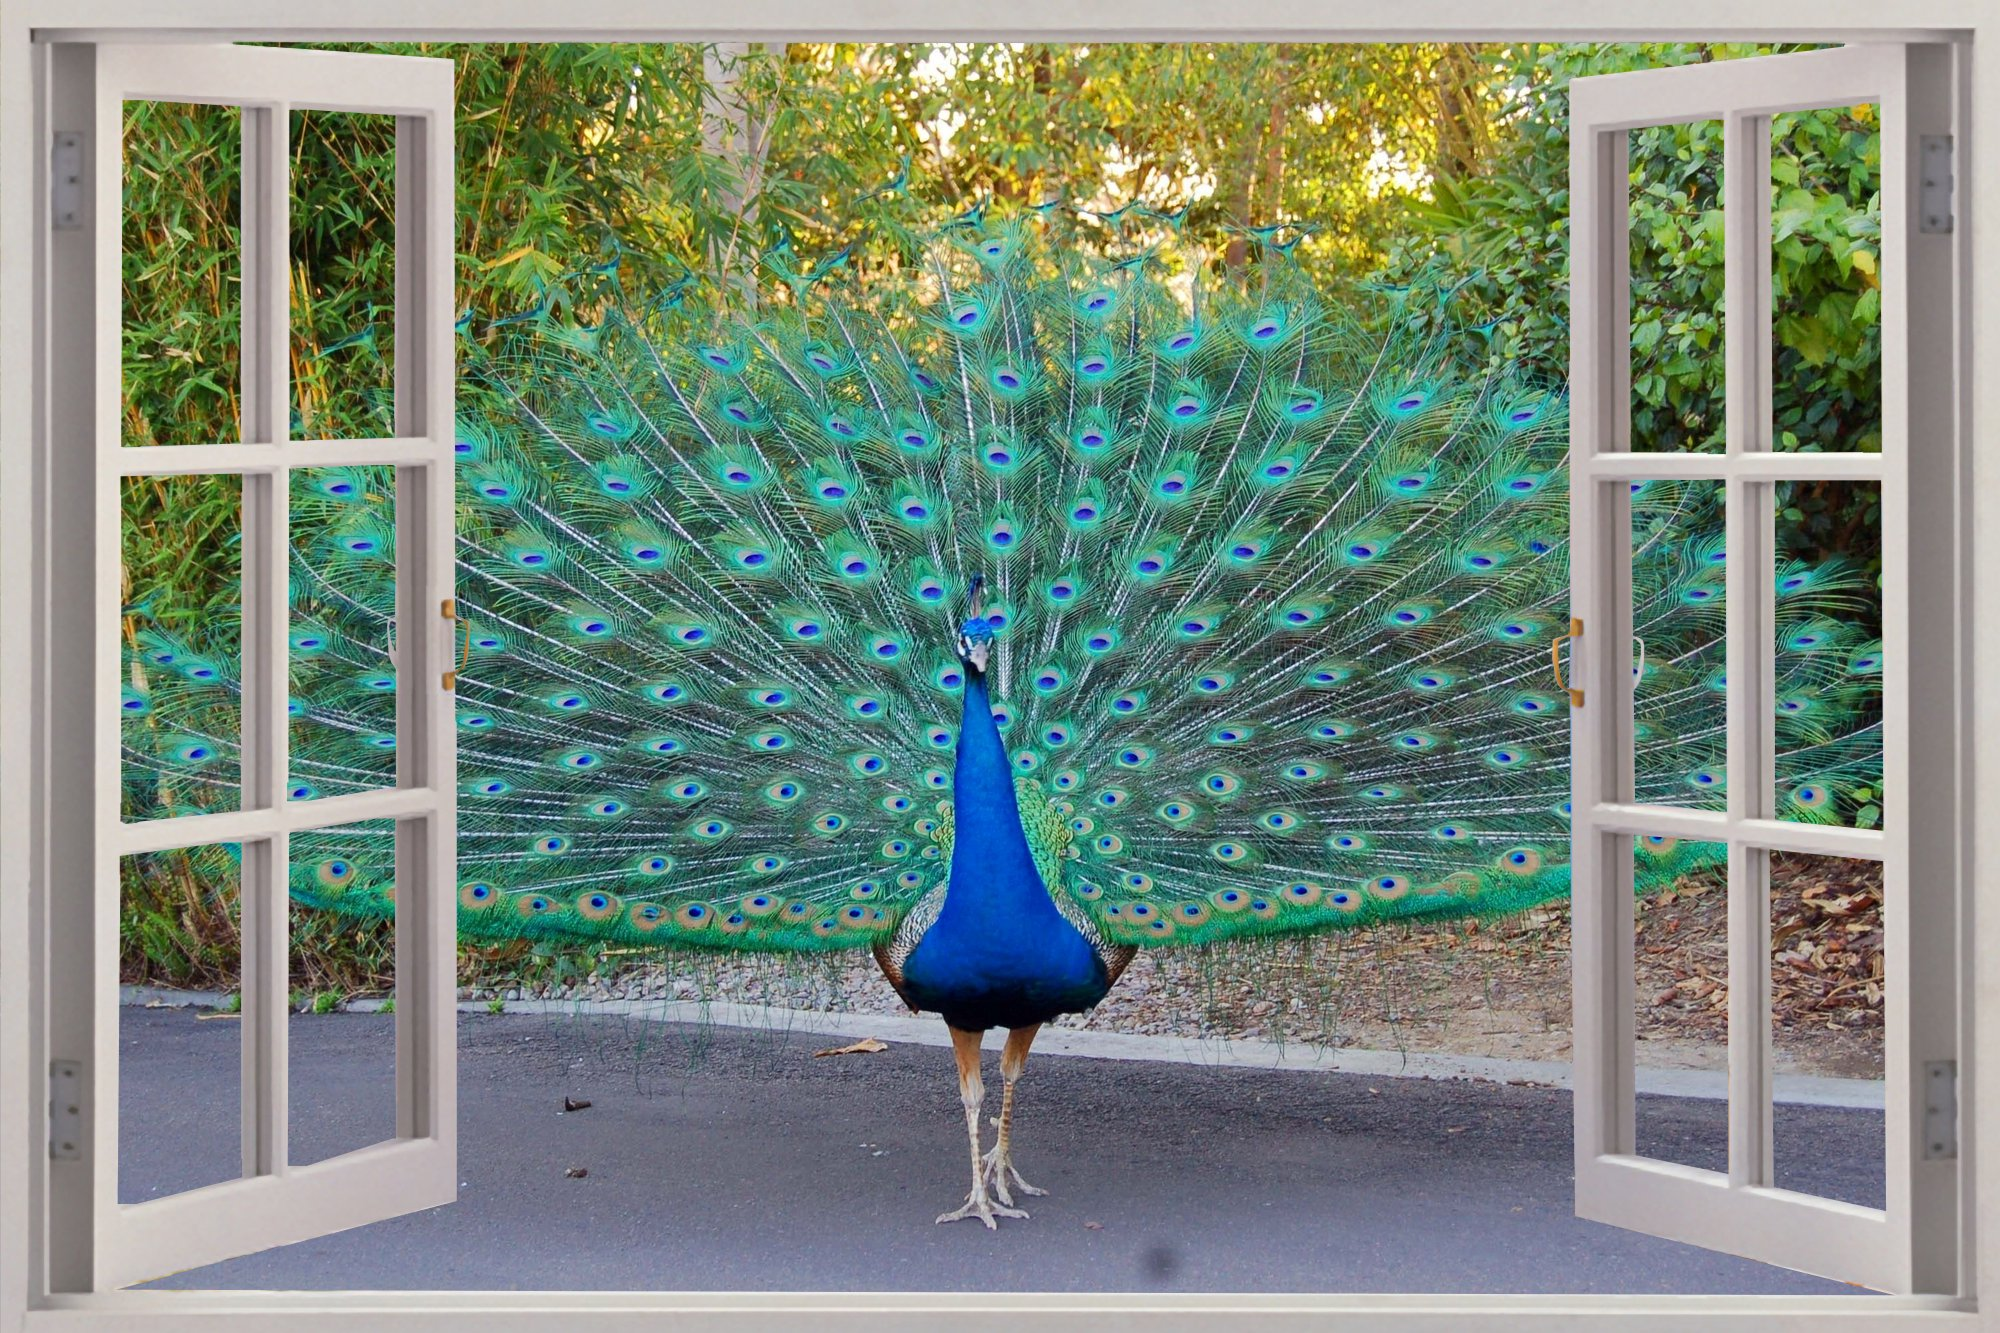 Window Beautiful Peacock View Wall Stickers Mural Art - Pasadena Peacocks , HD Wallpaper & Backgrounds